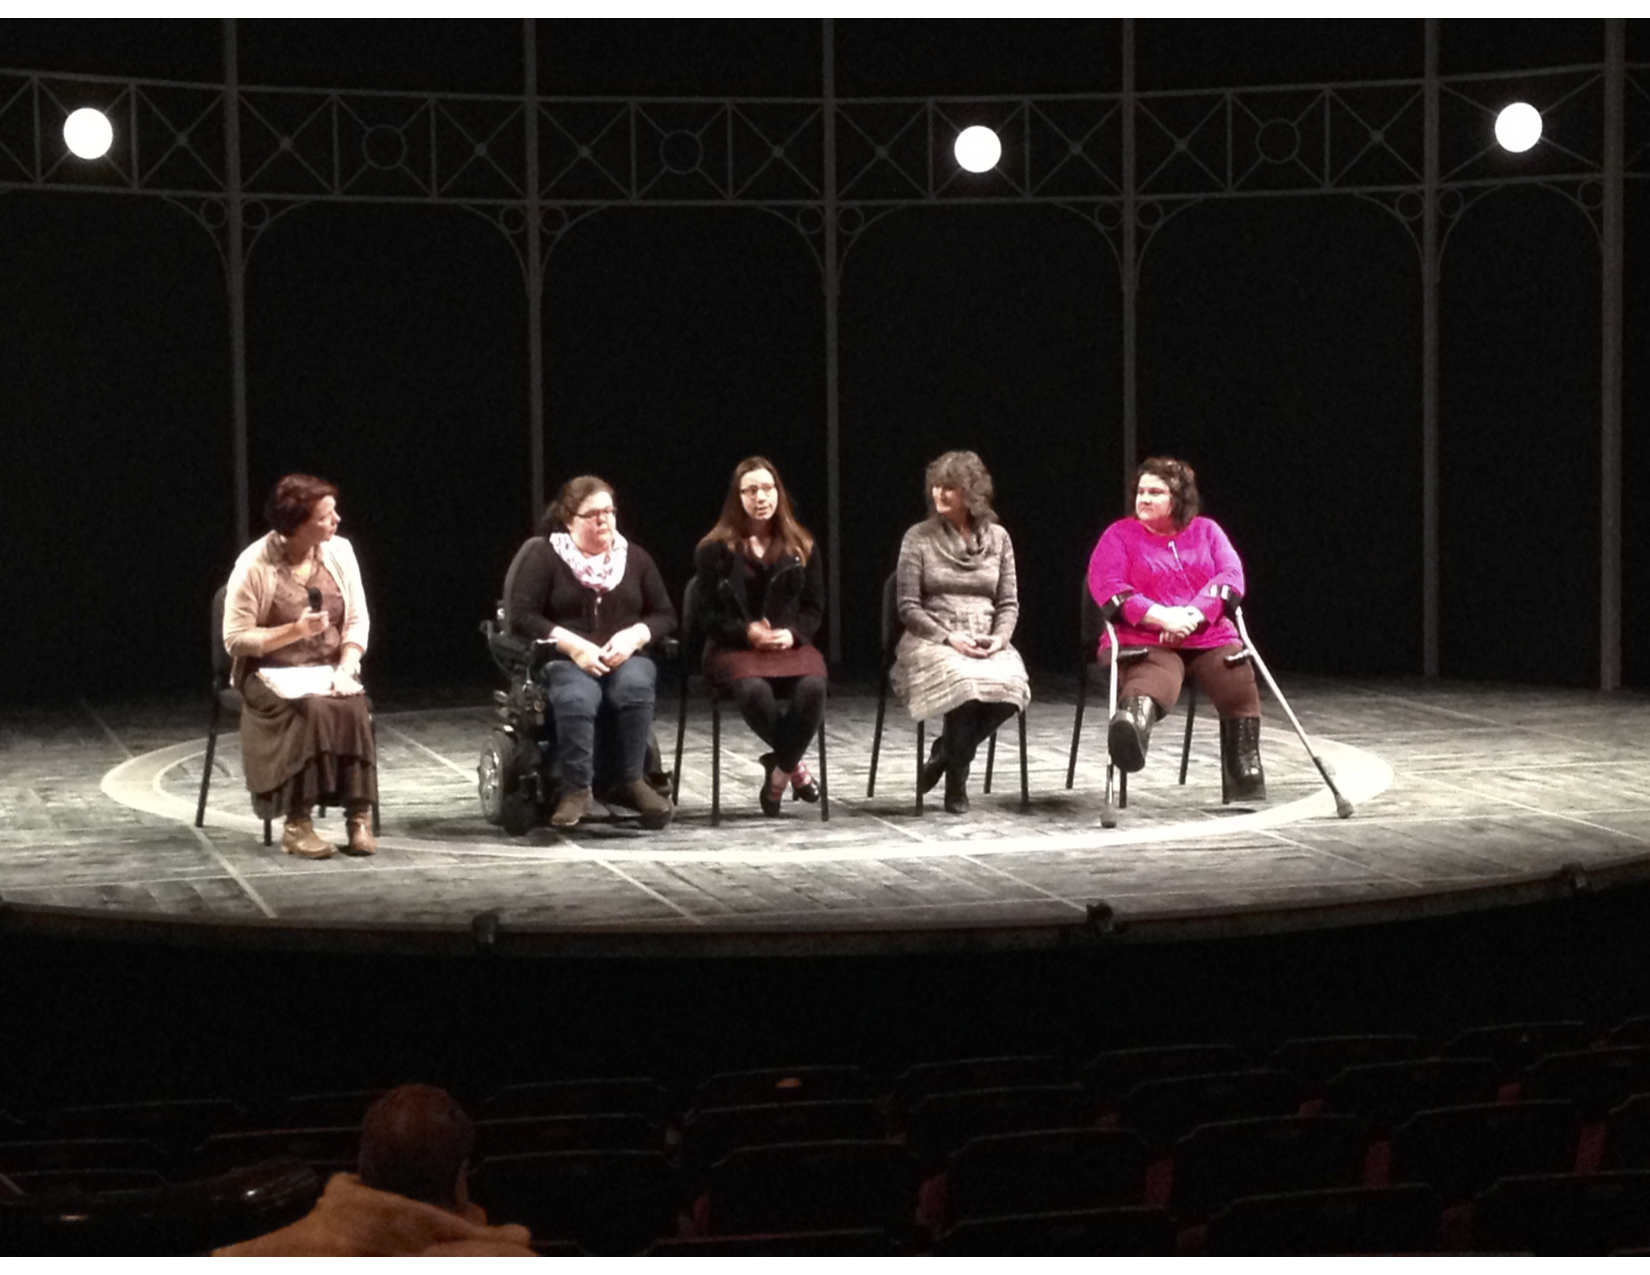 Five women on a stage taking questions from the audience and the moderator about The Elephant Man